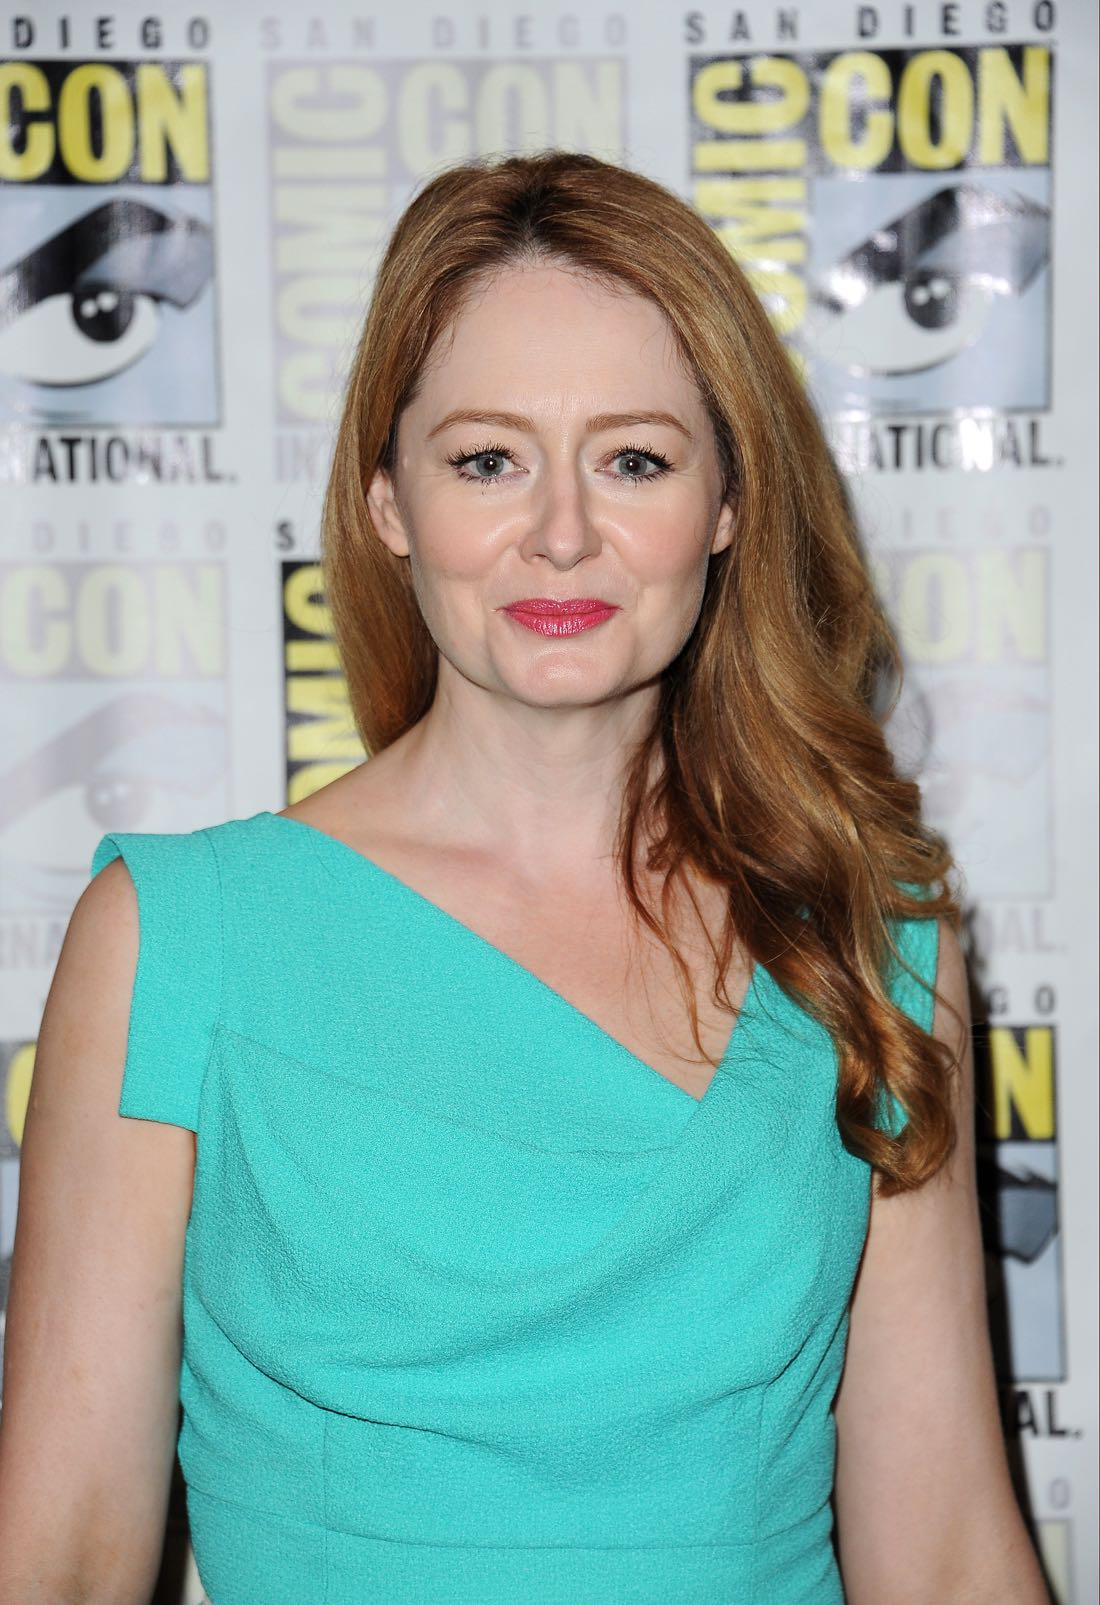 FOX FANFARE AT SAN DIEGO COMIC-CON © 2016: 24:LEGACY cast member Miranda Otto during the 24:LEGACY press room on Sunday, July 24 at the FOX FANFARE AT SAN DIEGO COMIC-CON © 2016. CR: Scott Kirkland/FOX © 2016 FOX BROADCASTING